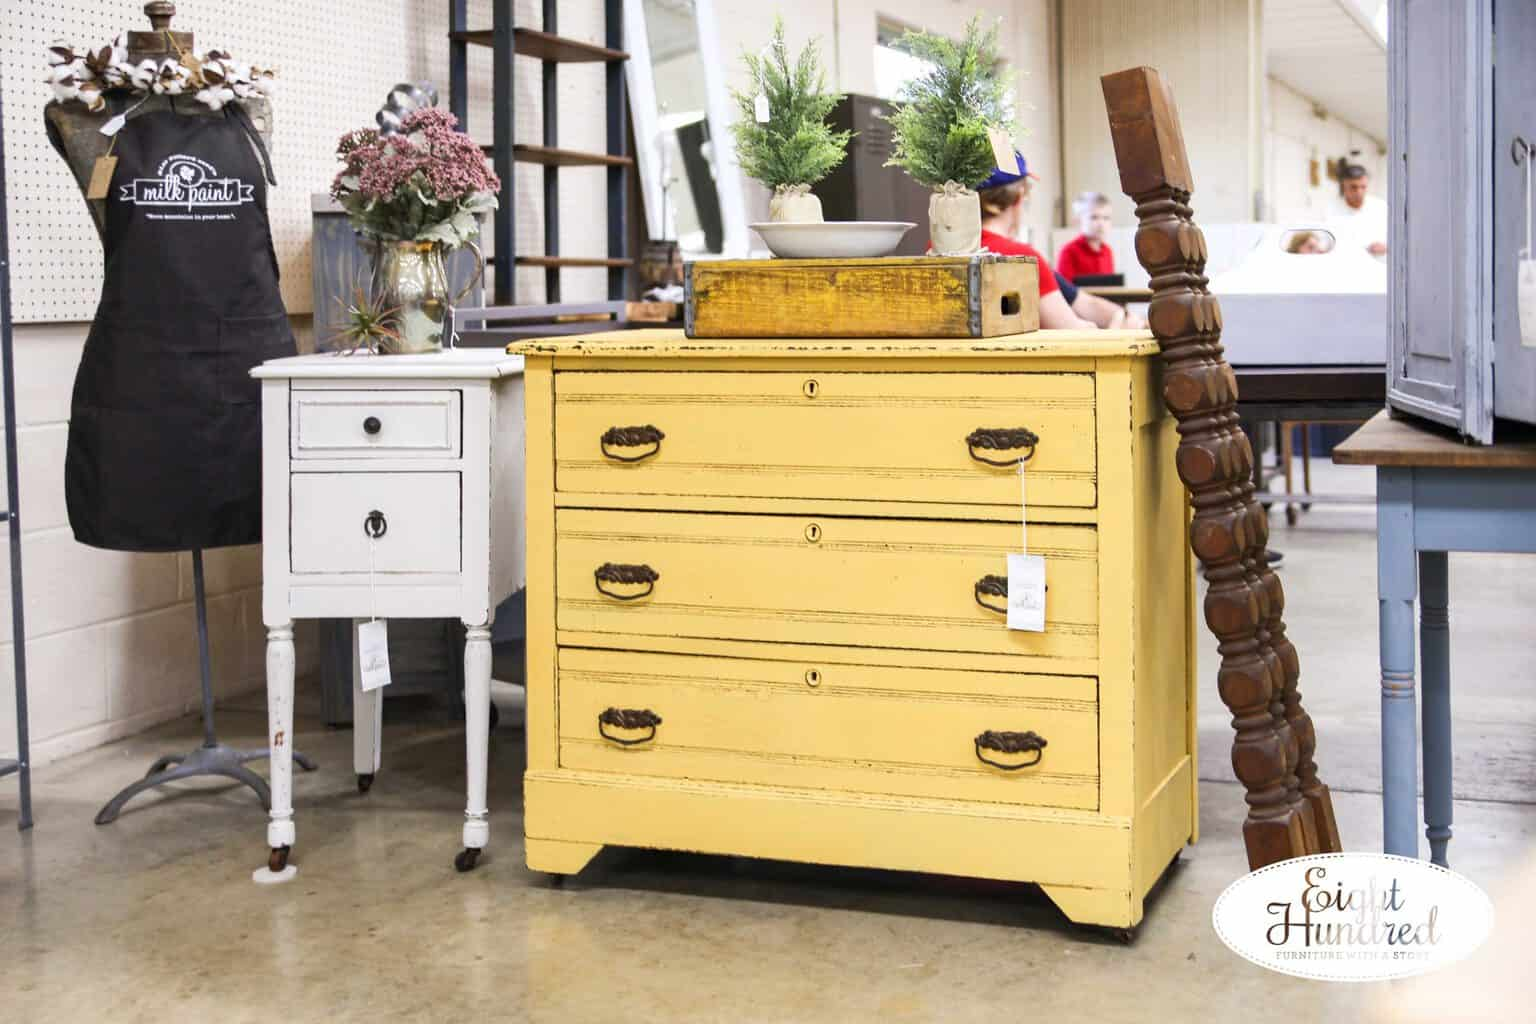 Mustard Seed Yellow Milk Painted Dresser and Grain Sack Milk Painted Nightstand